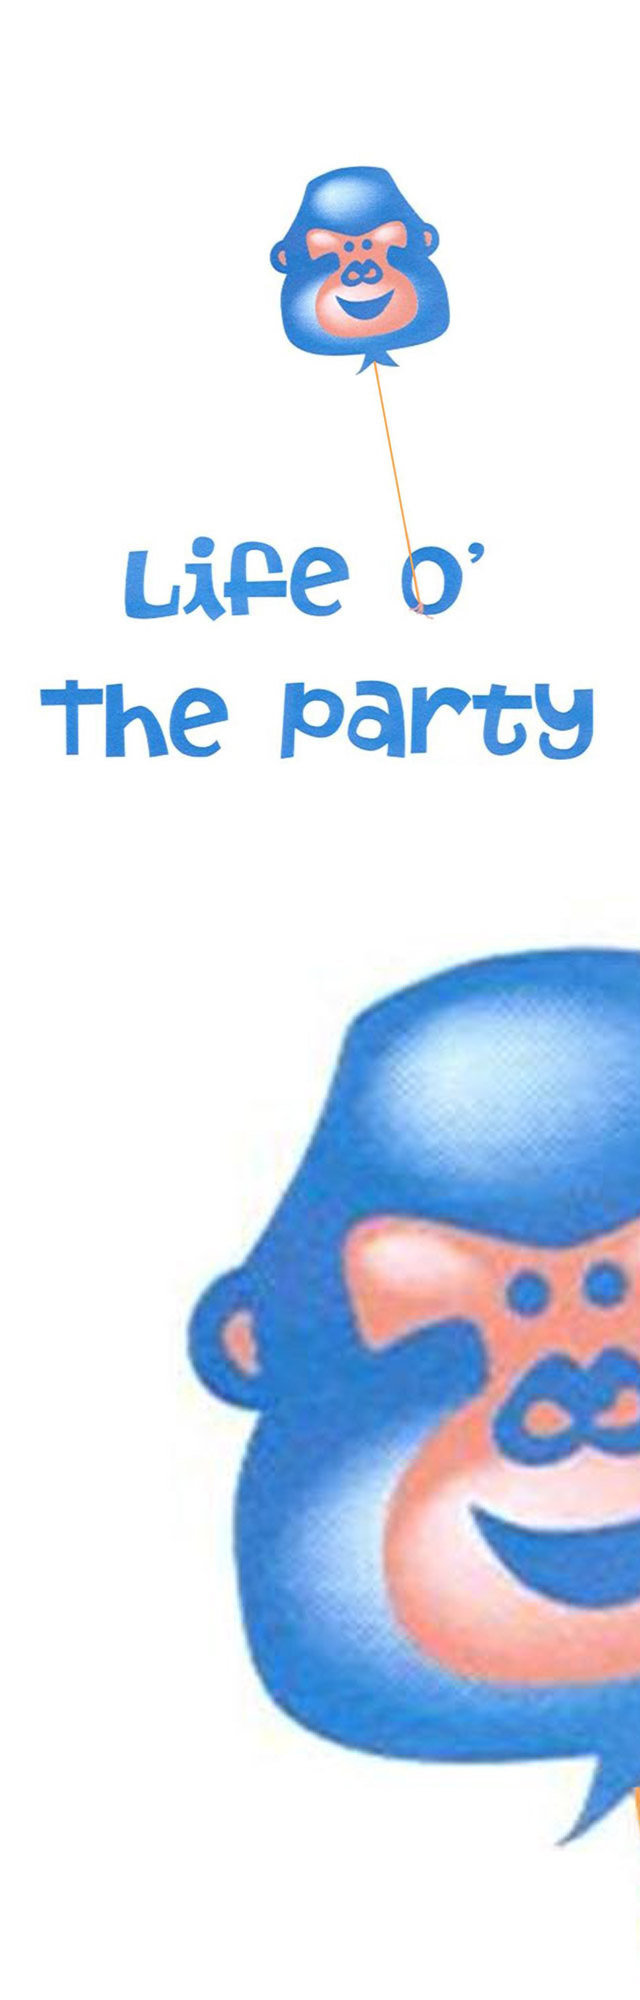 Life O' the Party